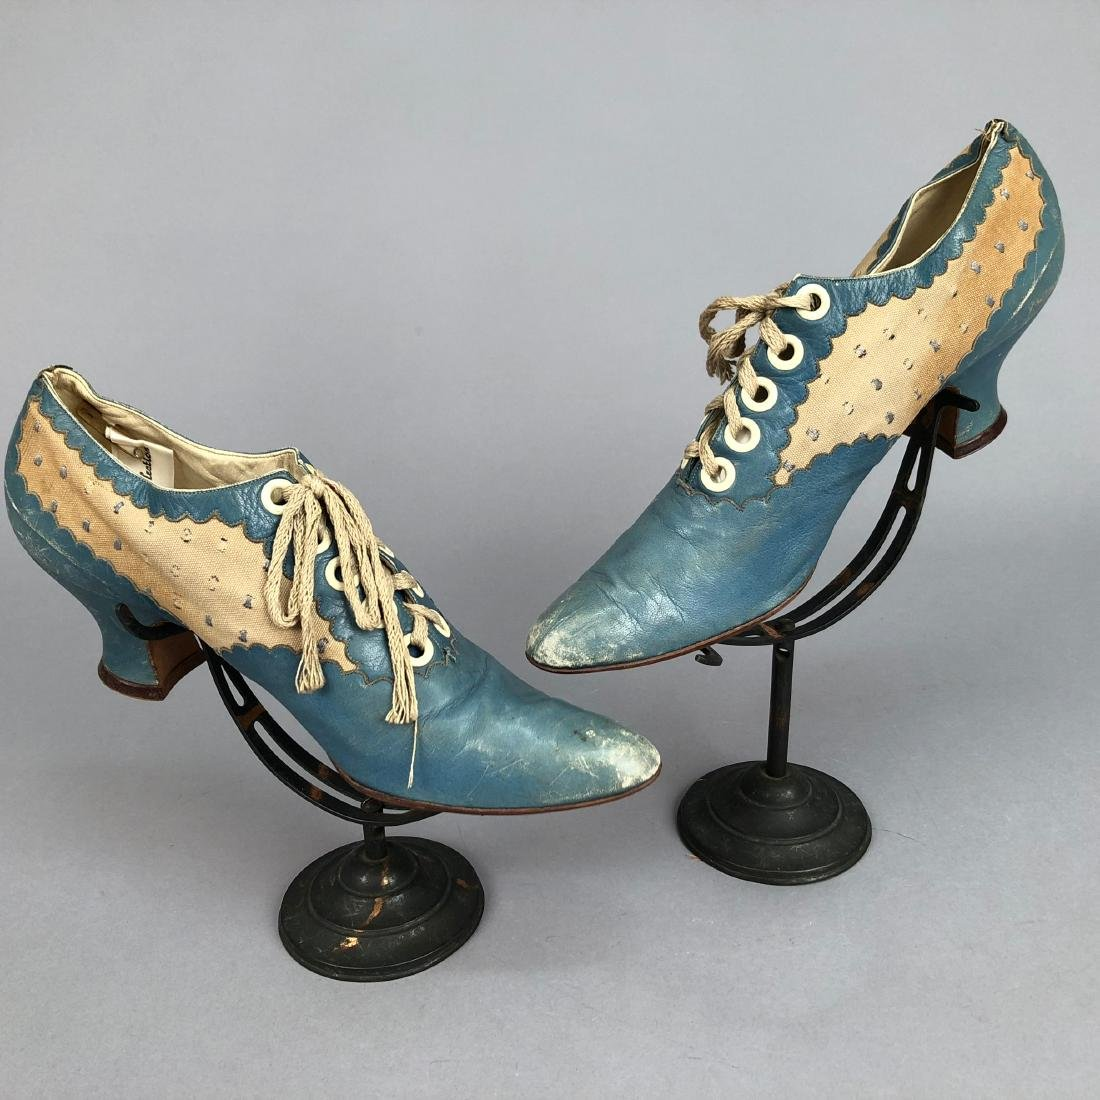 LACING LEATHER SHOES with DOTTED INSERTS, 1890 - 1895 - 2